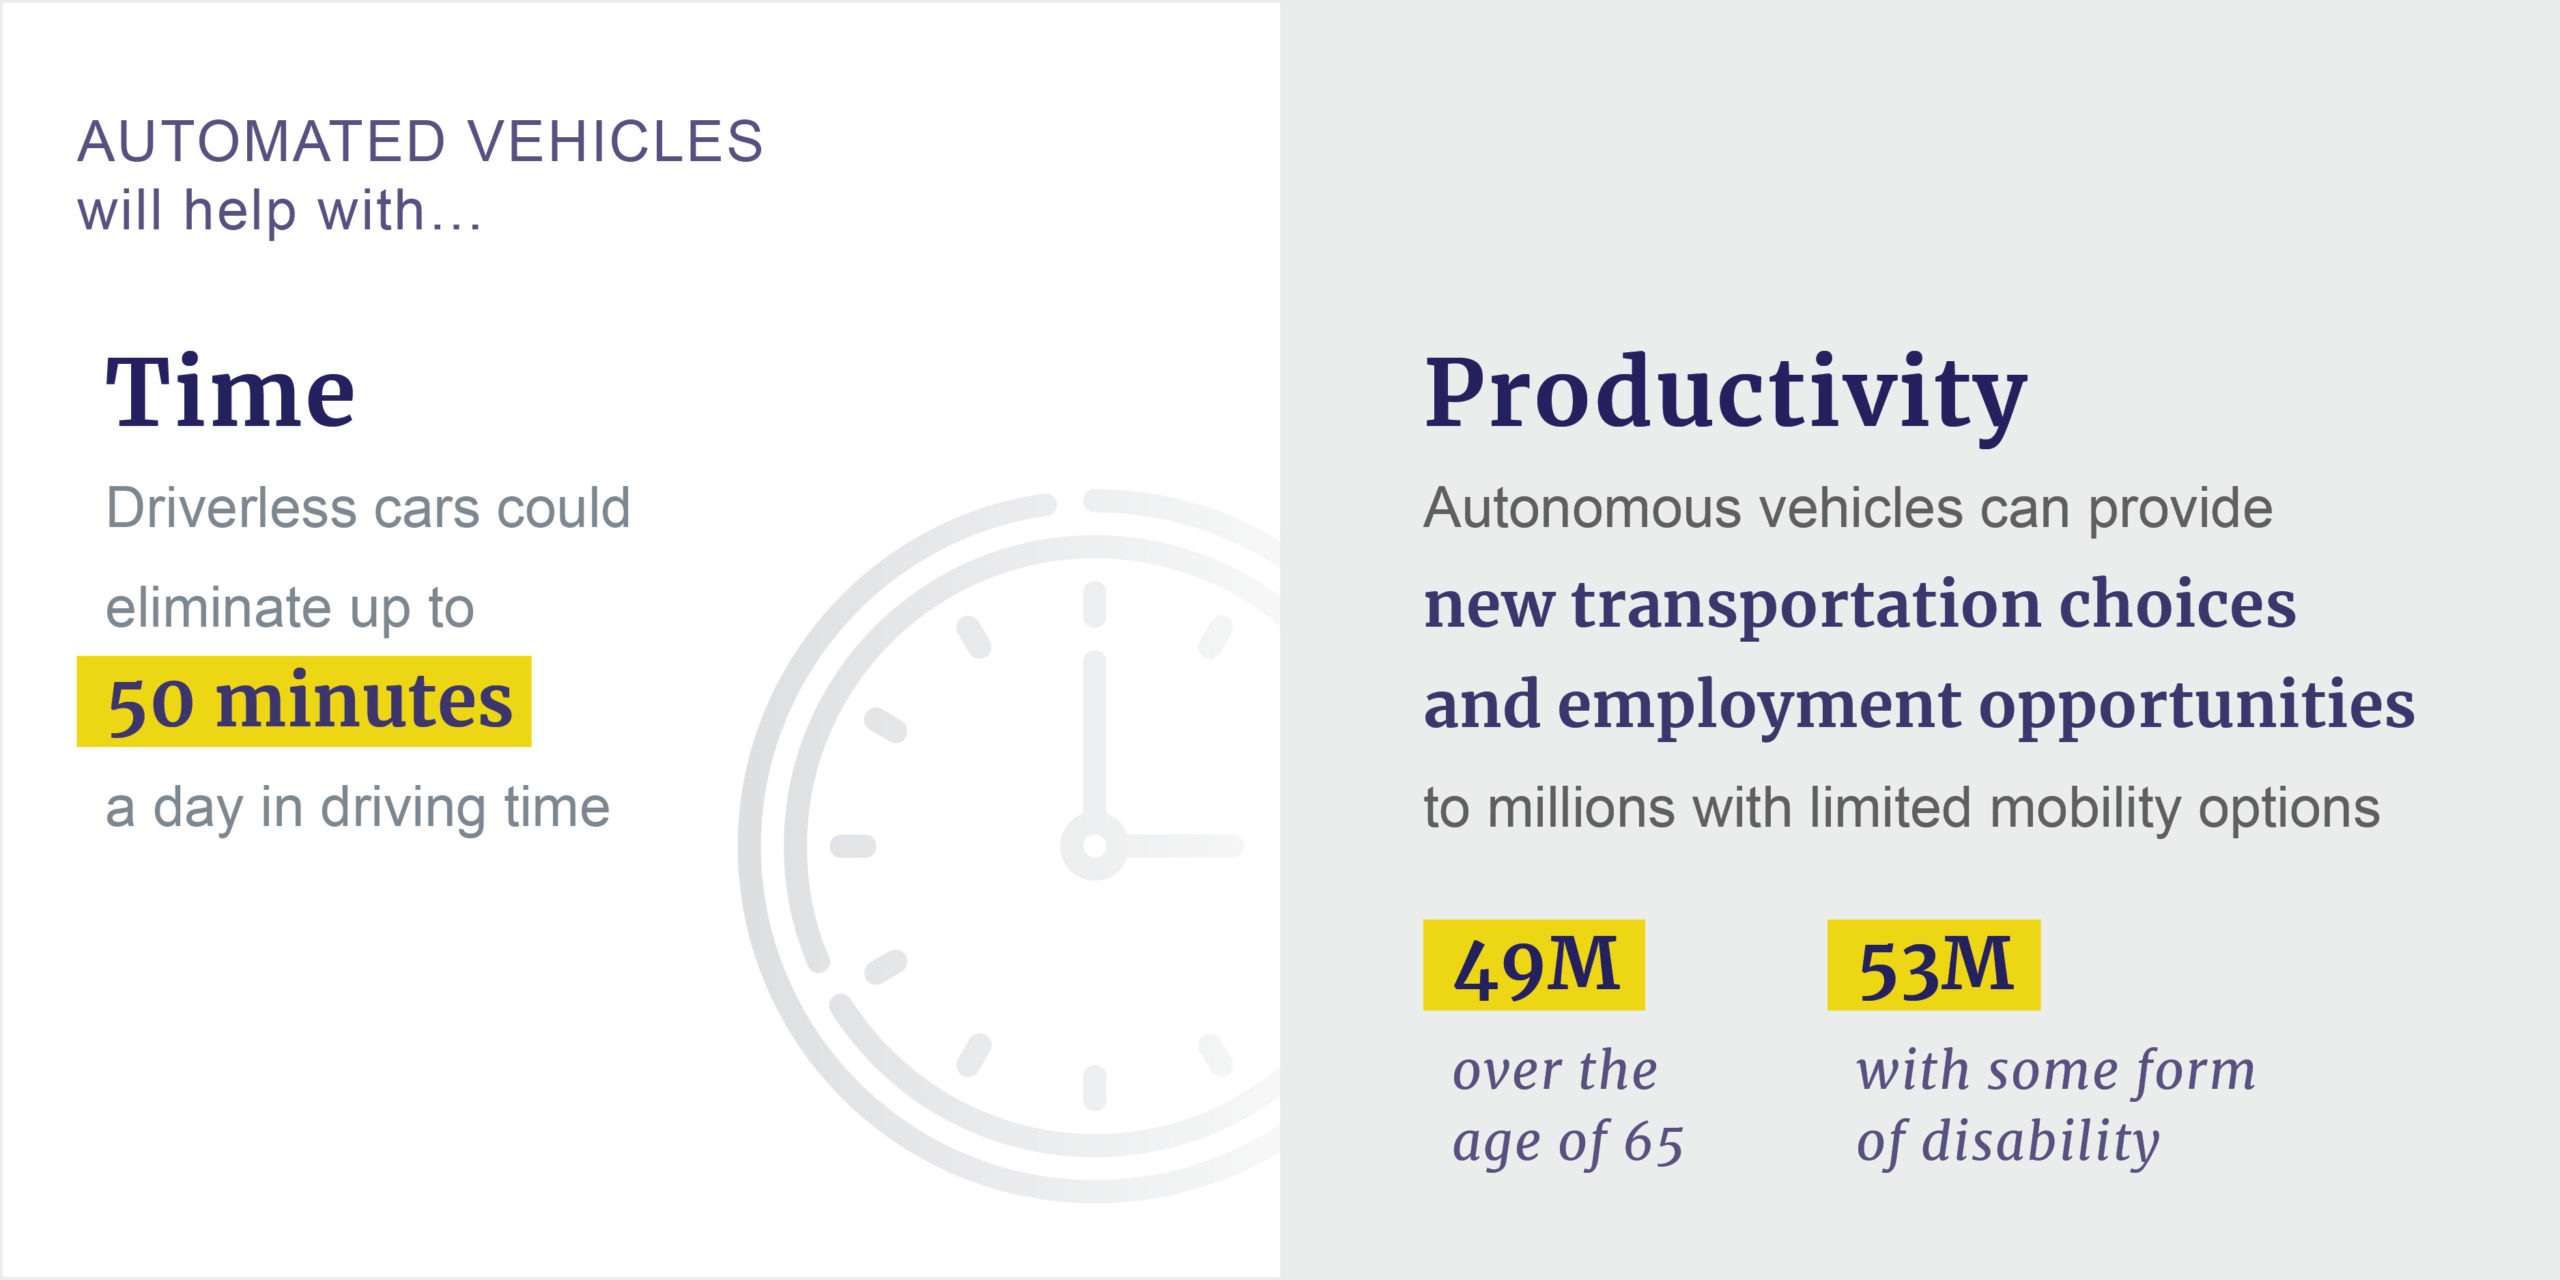 Driverless cars benefit time and productivity